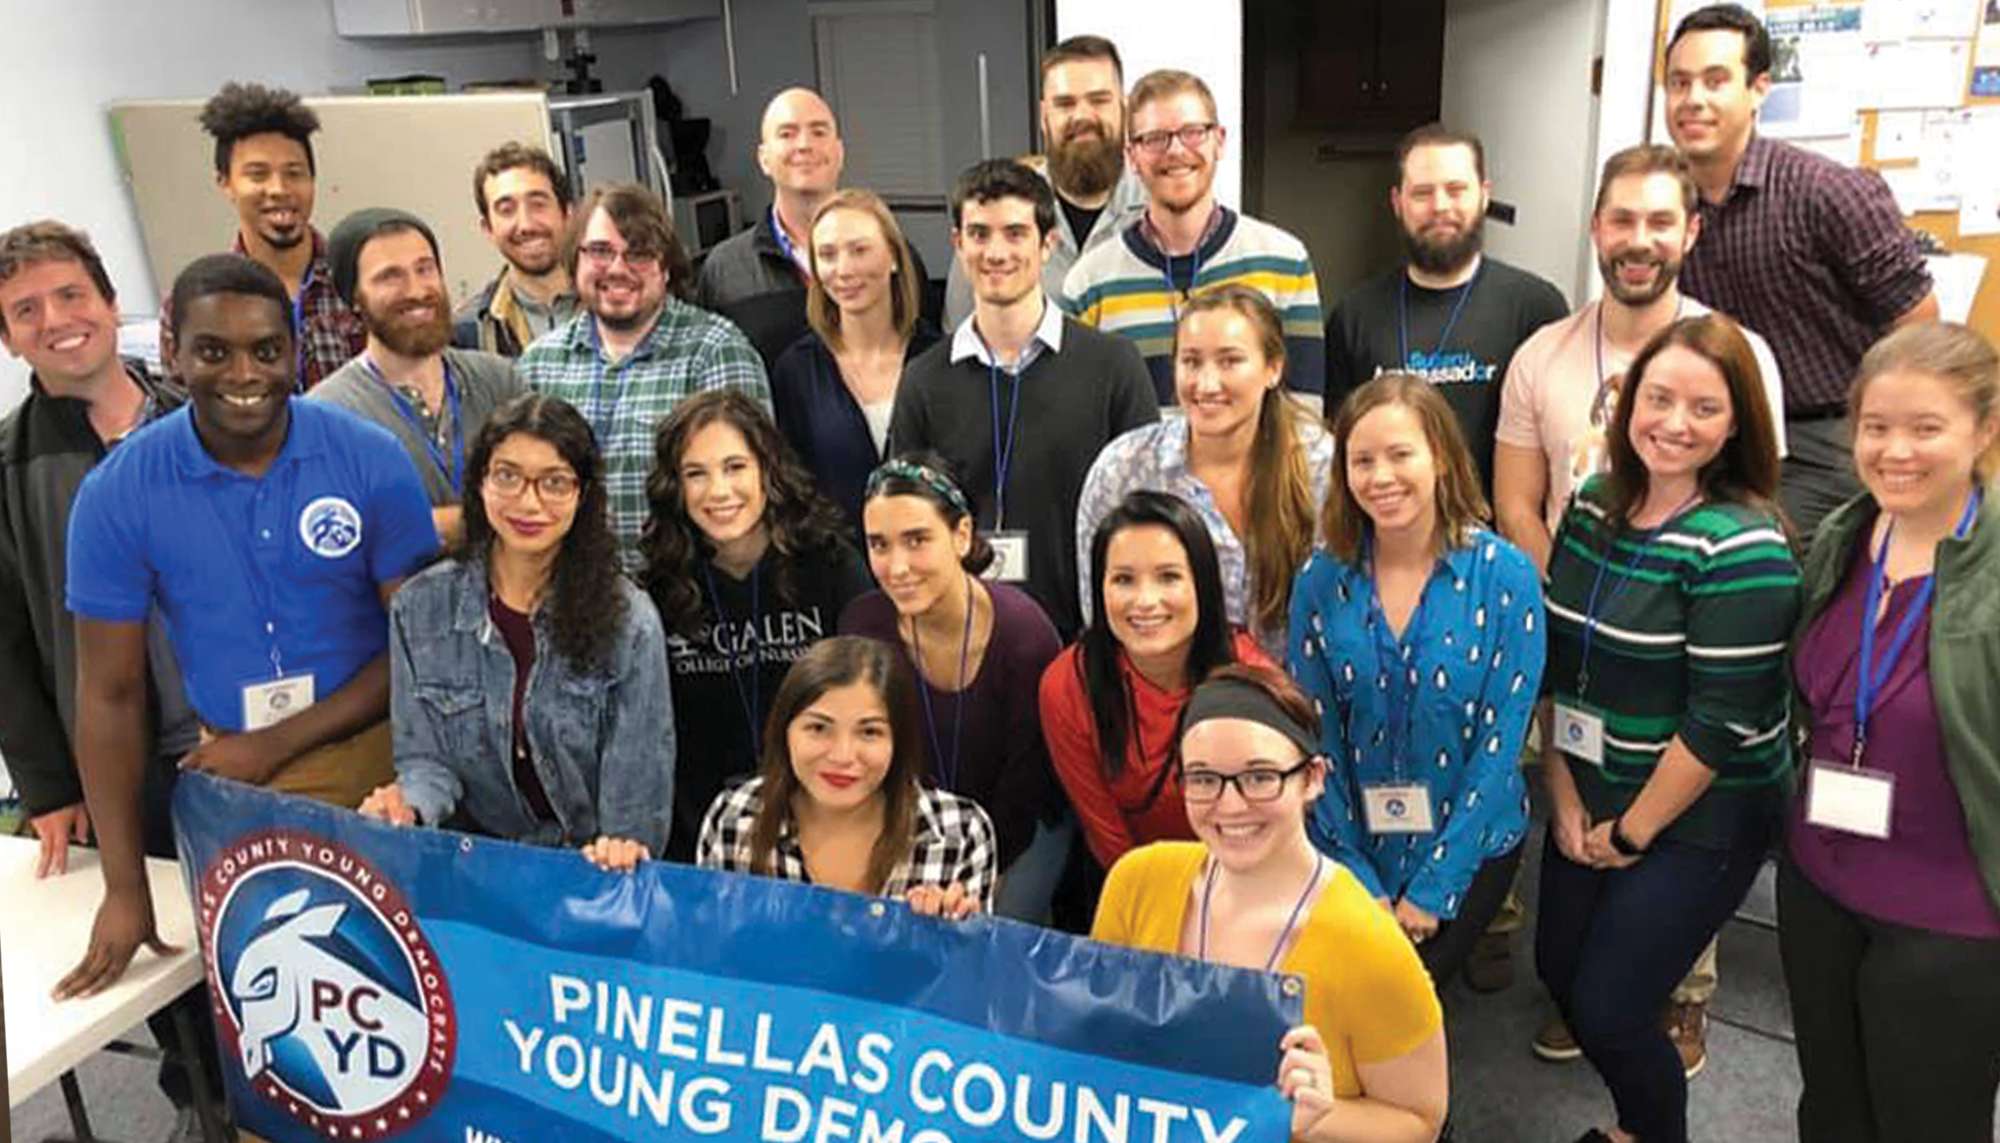 Pinellas County Young Democrats